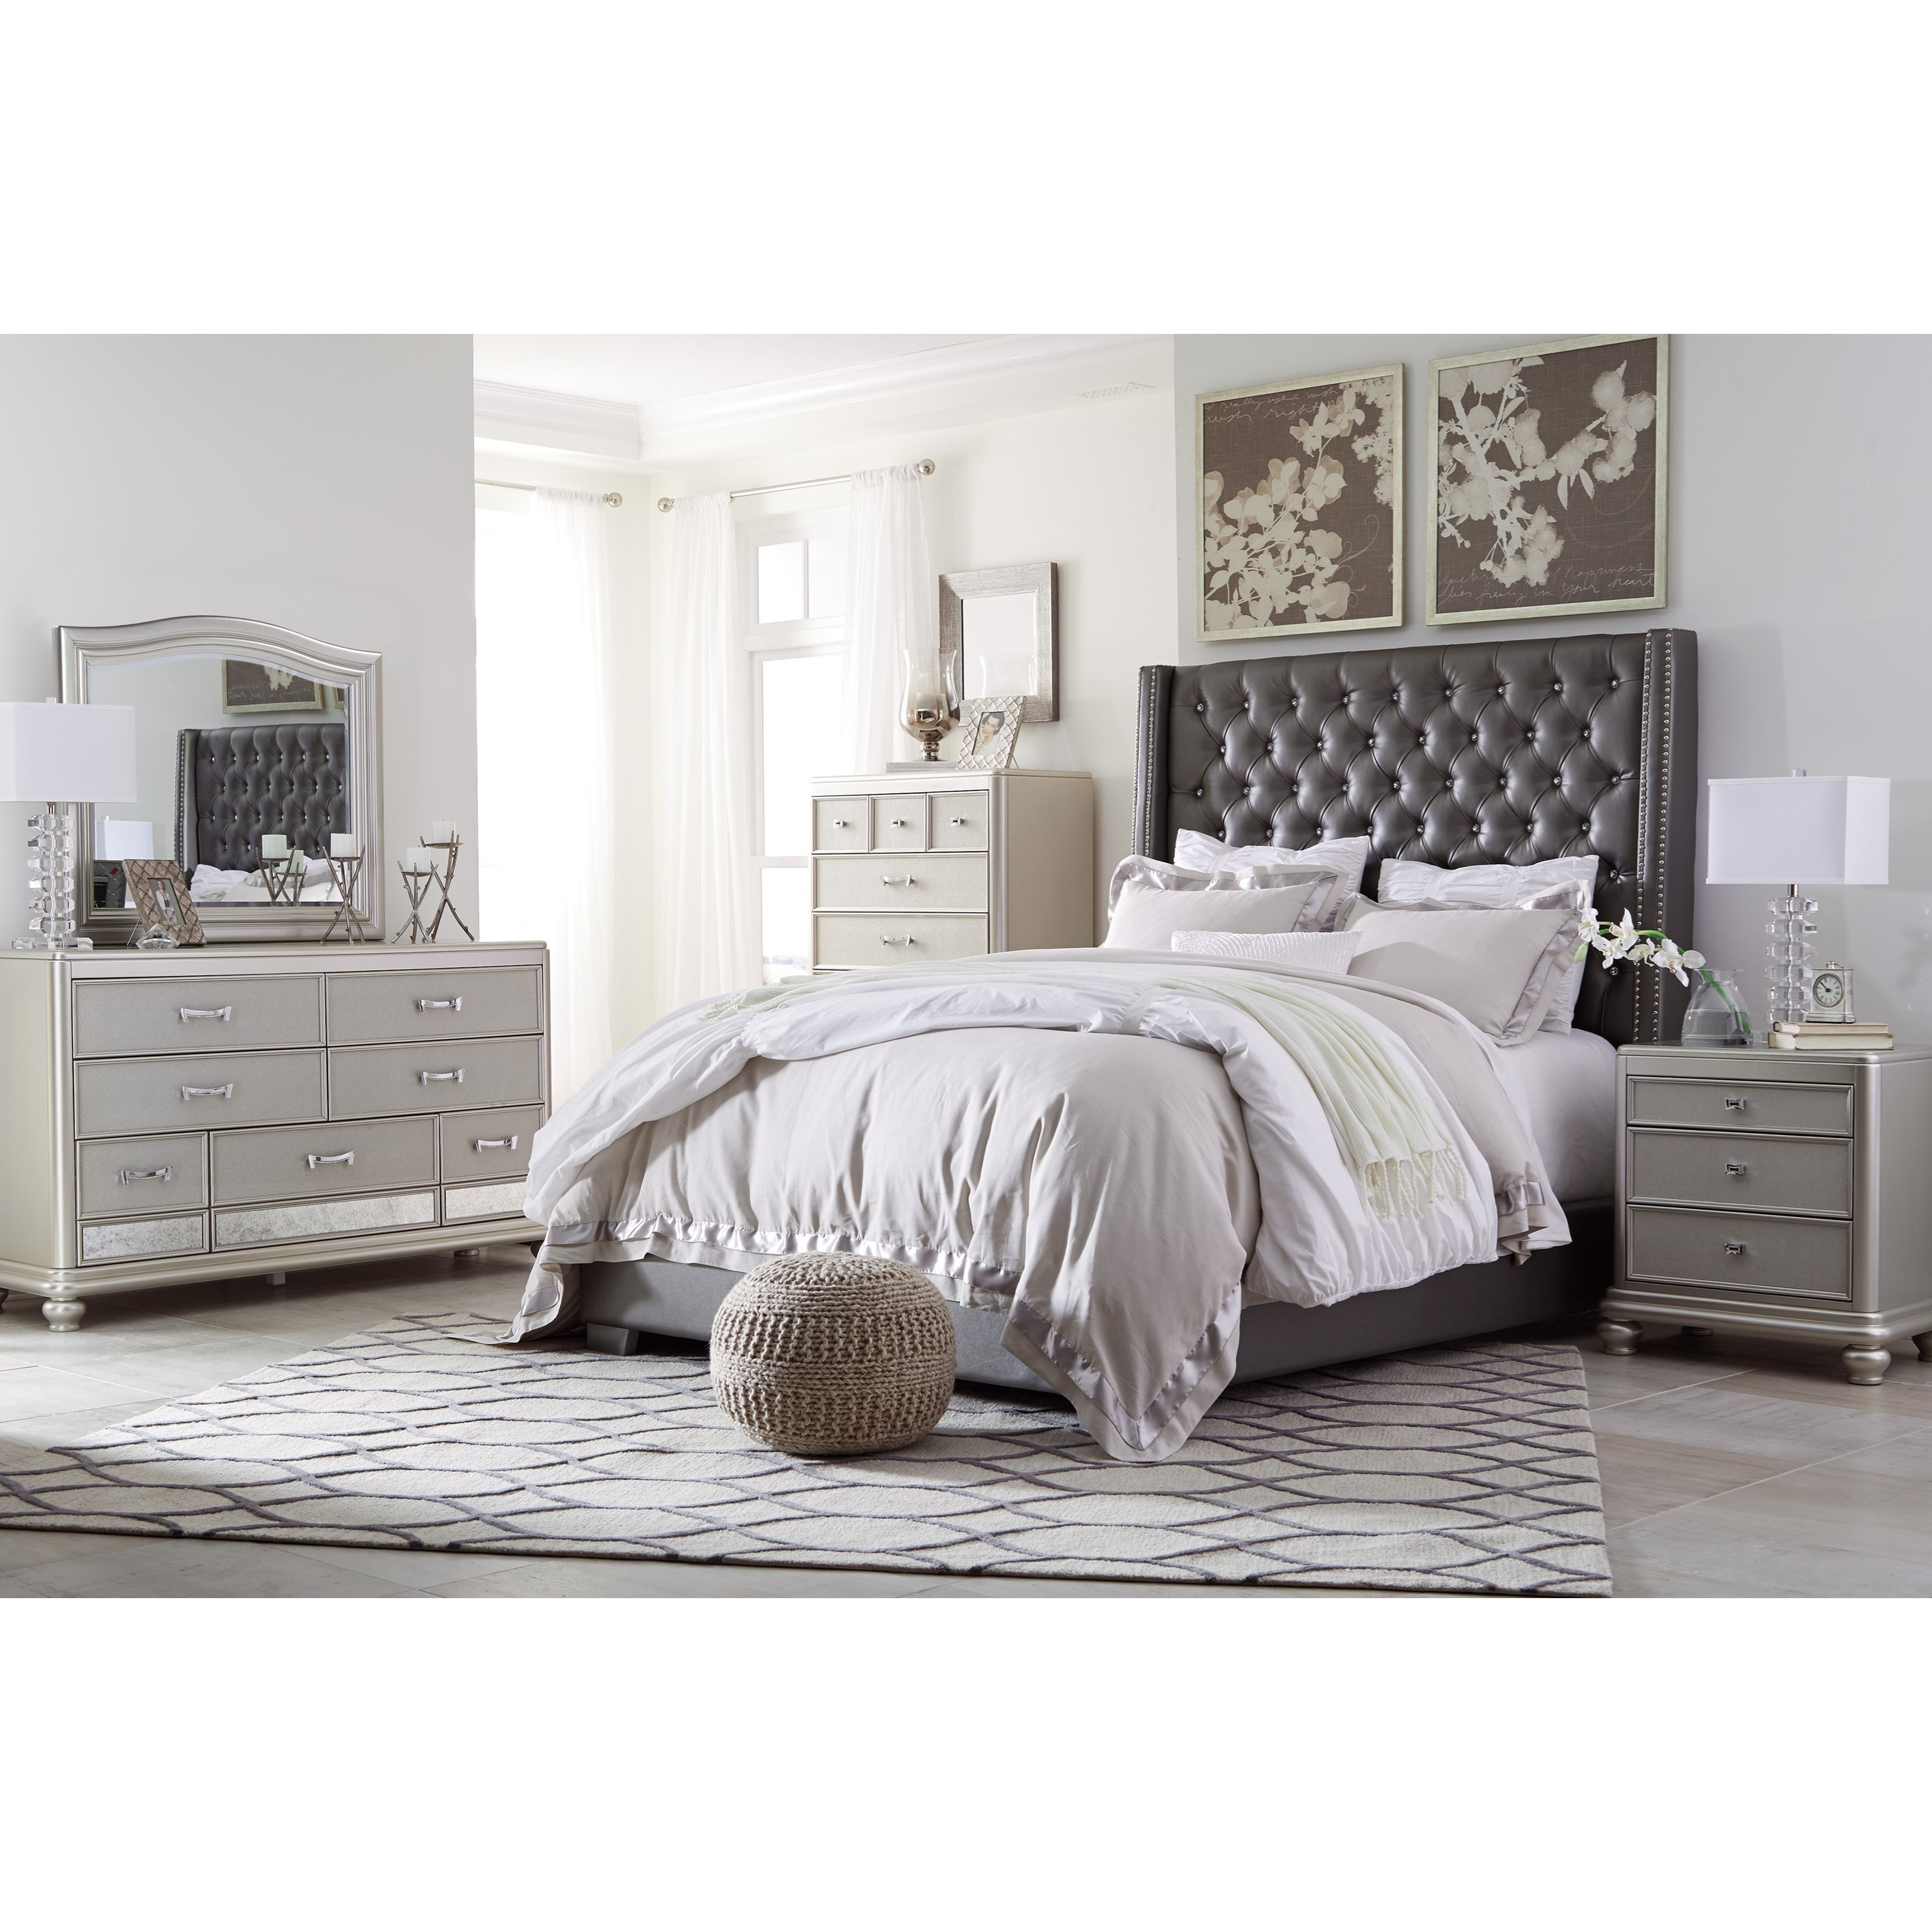 Ashley (Signature Design) Coralayne Queen Upholstered Bed